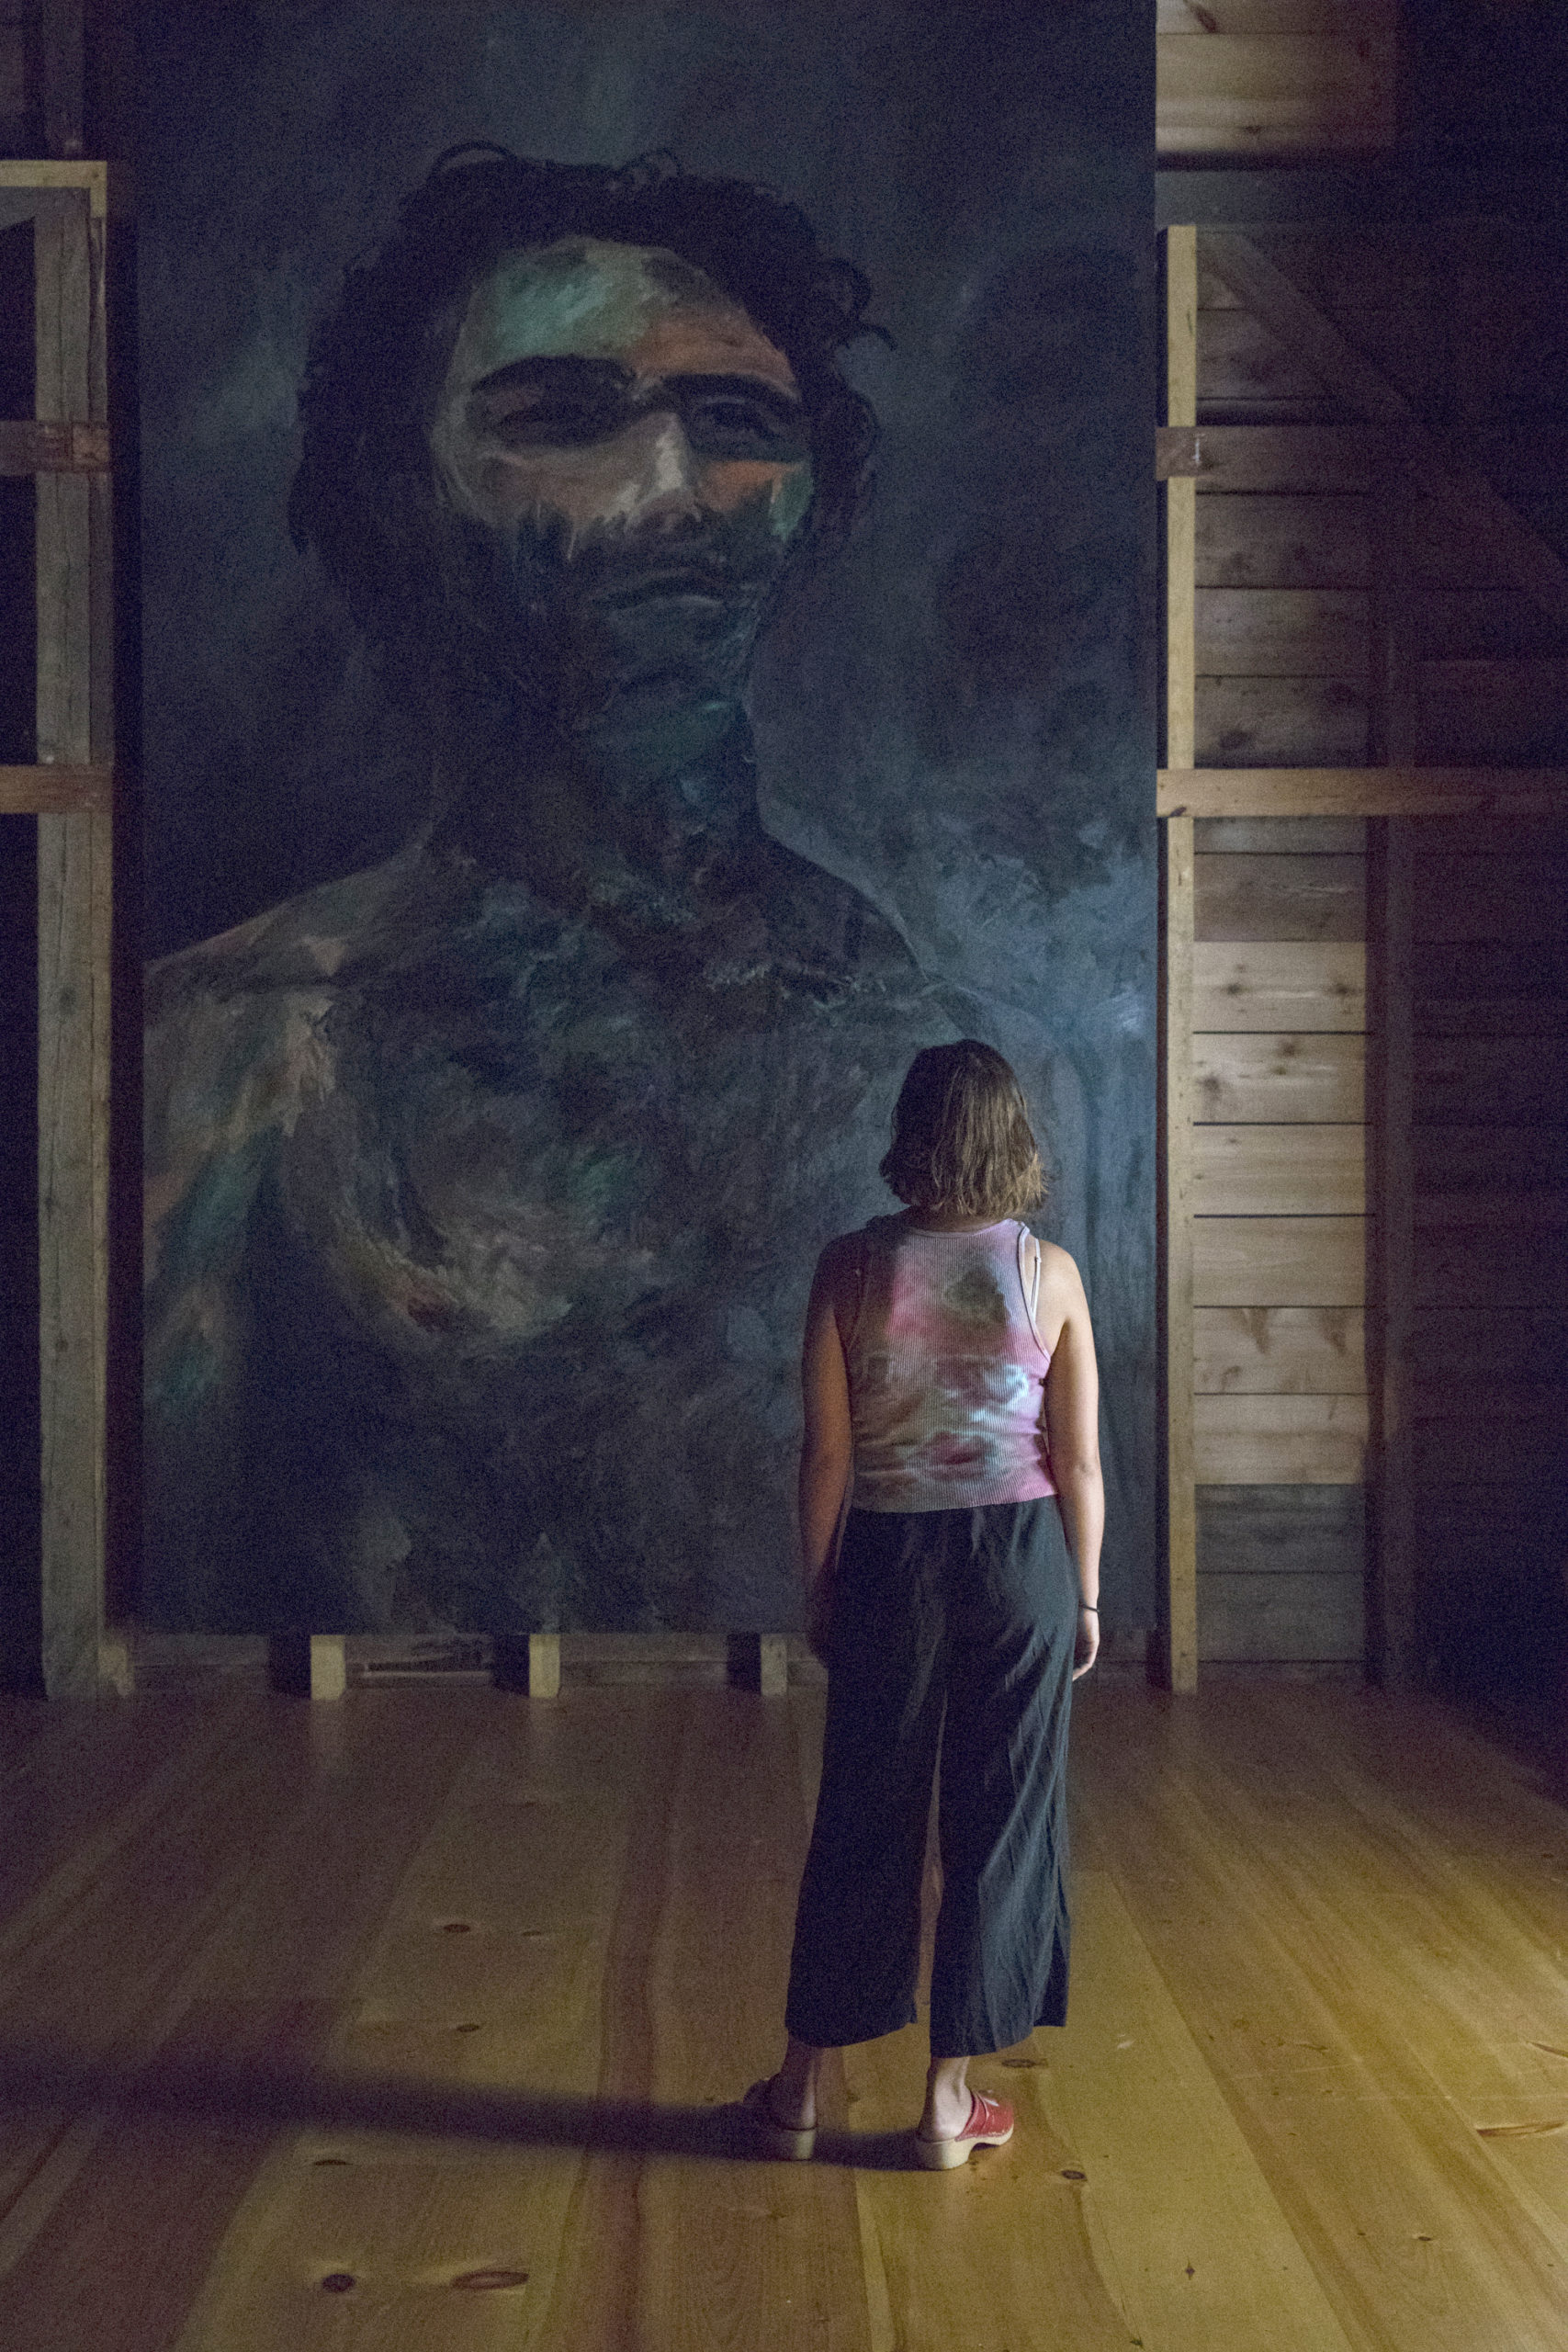 Darius Yektai's exhibition, Darklight, opened to the public on September 5, at The Arts Center at Duck Creek IN sPRINGS. The exhibit includes six large-scale self portrait paintings.             LORI HAWKINS